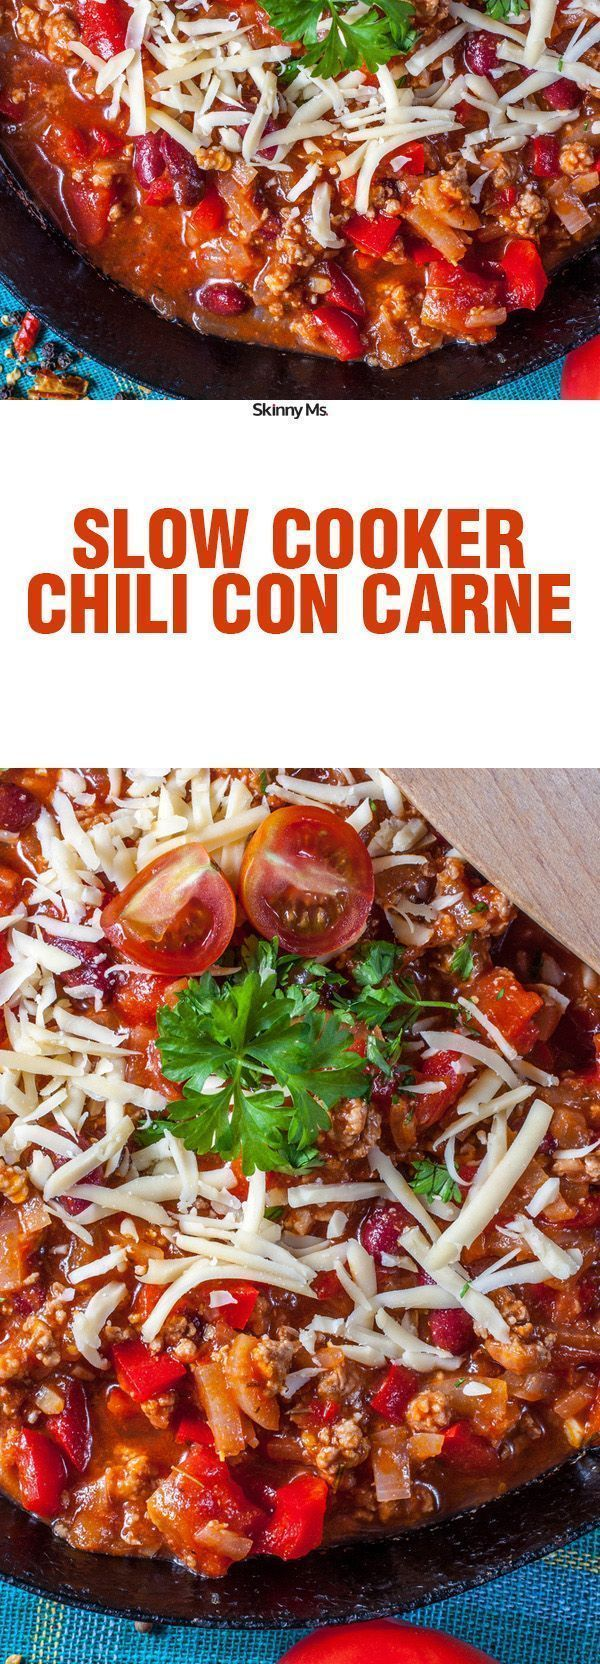 I can't believe this recipe for Slow Cooker Chili con Carne only comes in at 227 calories per serving. It smelled so good cooking in my house.